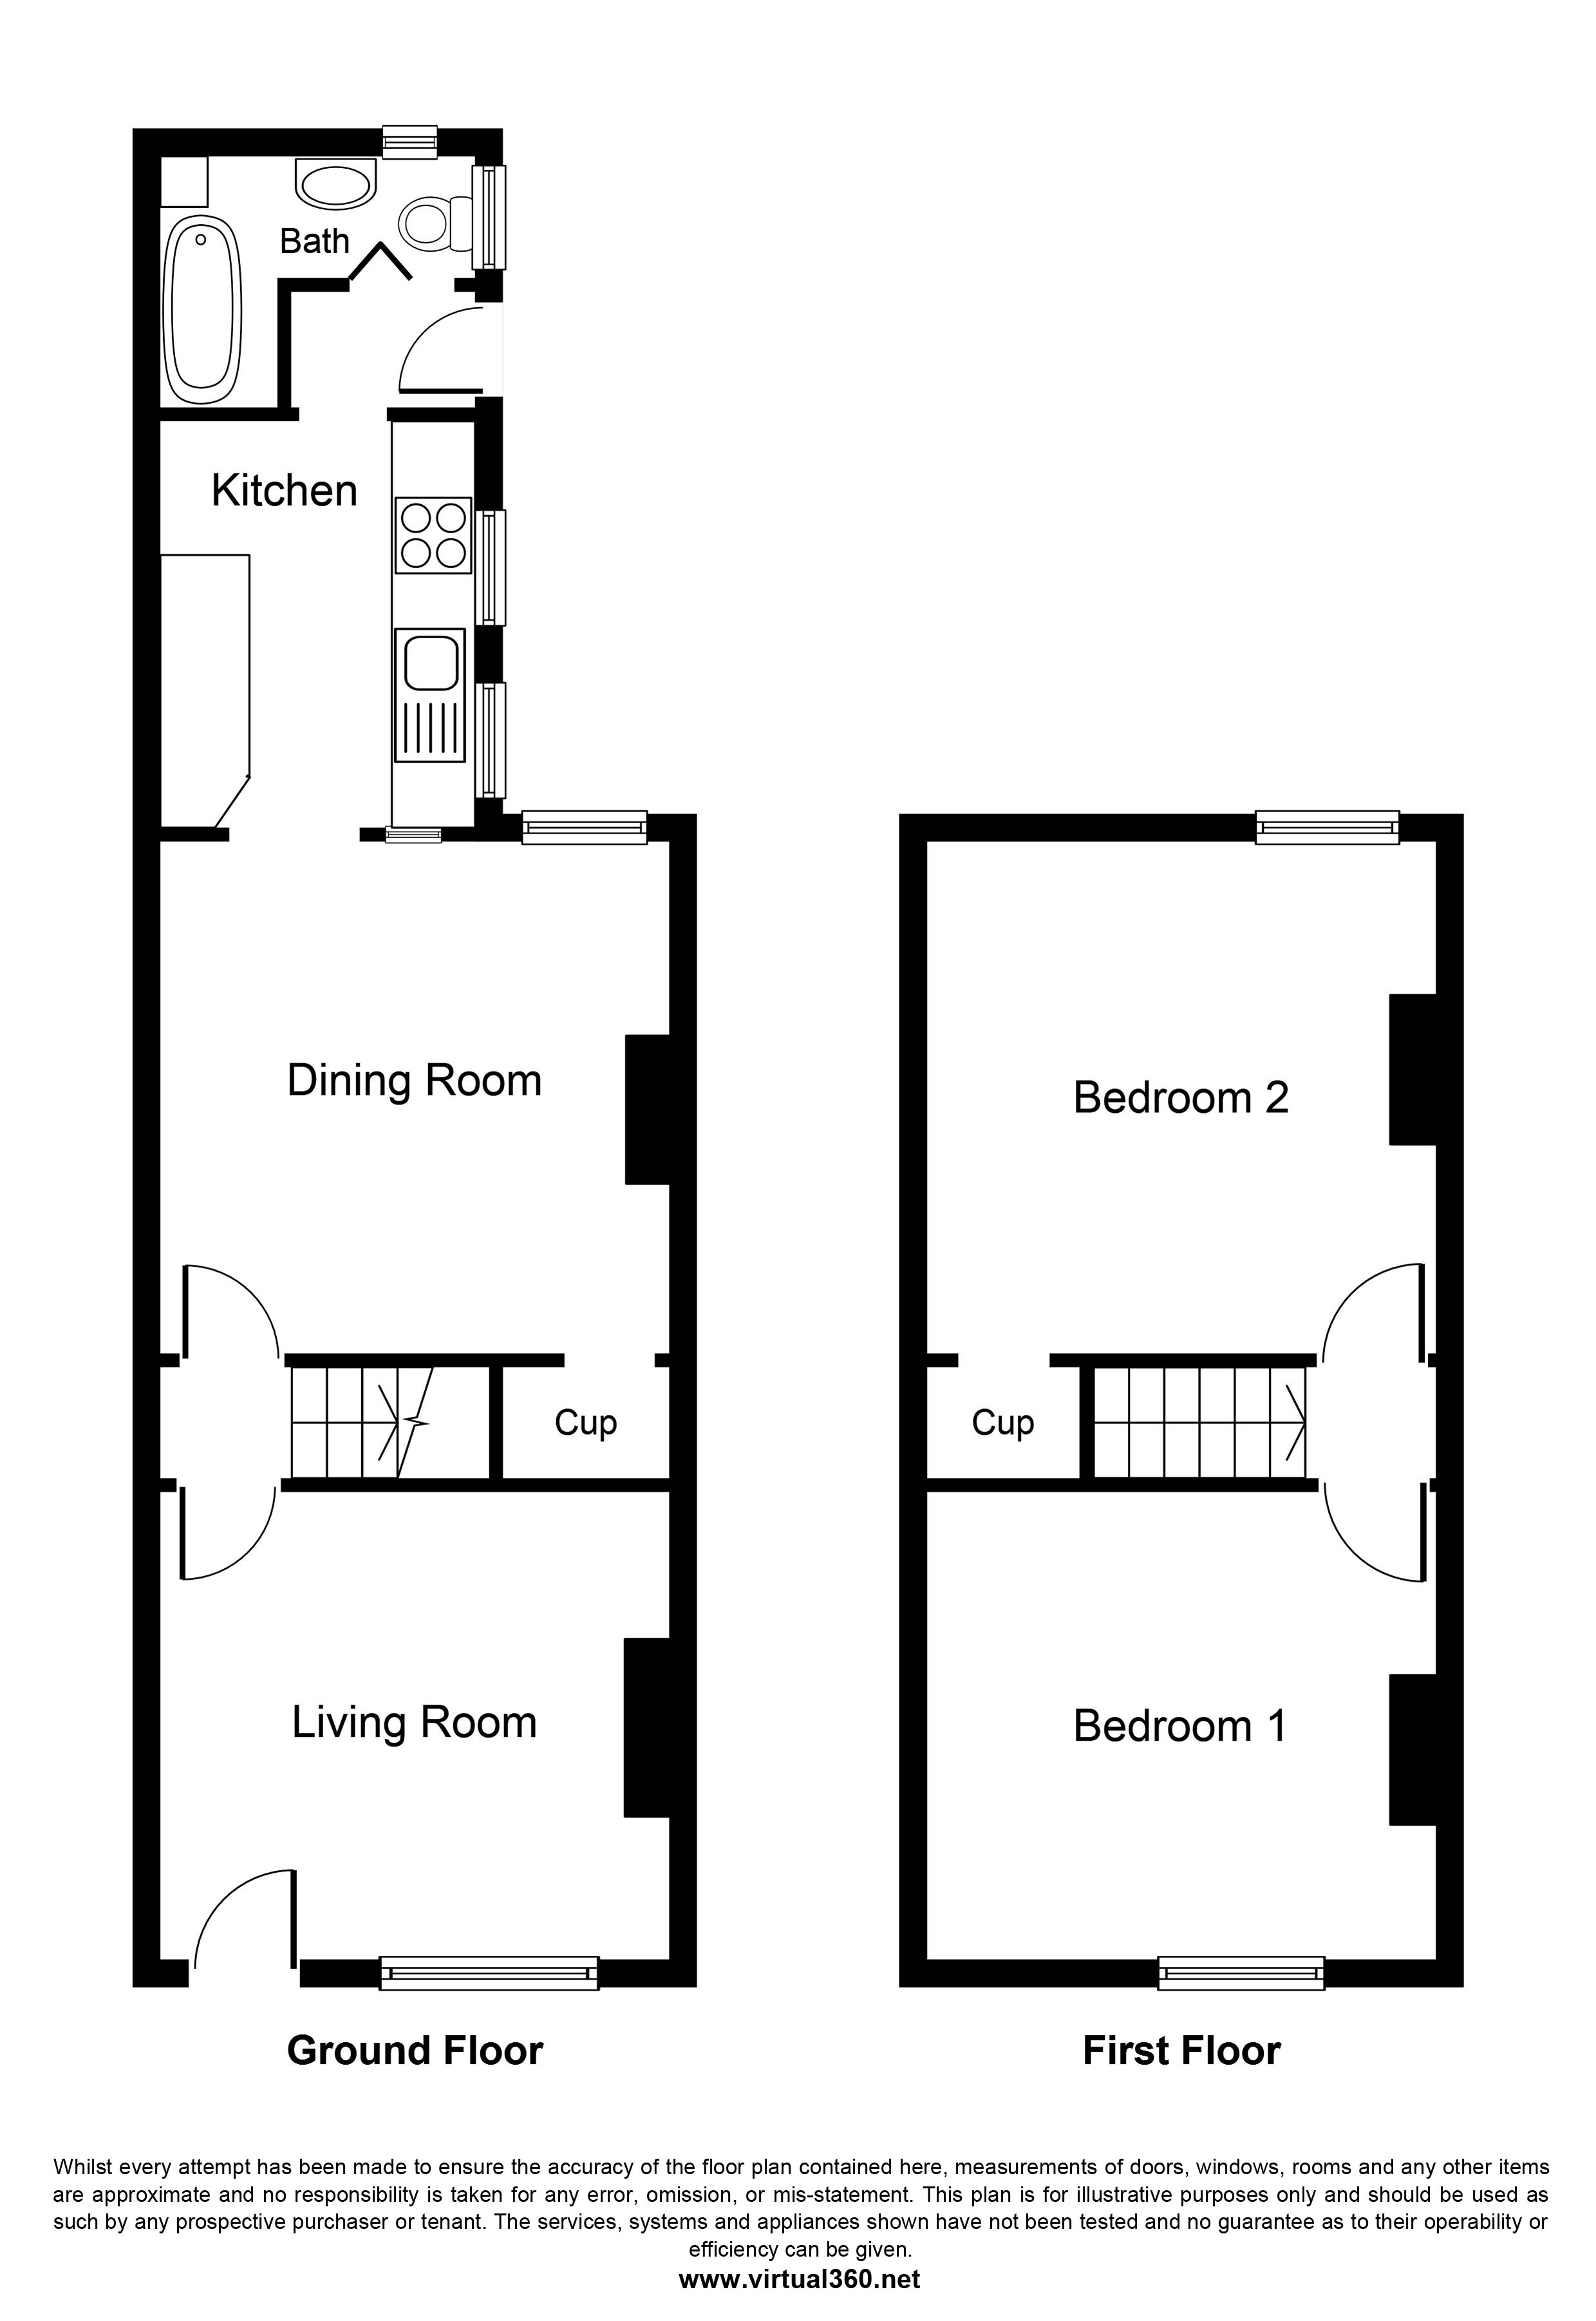 Terry Road, Coventry floor plan